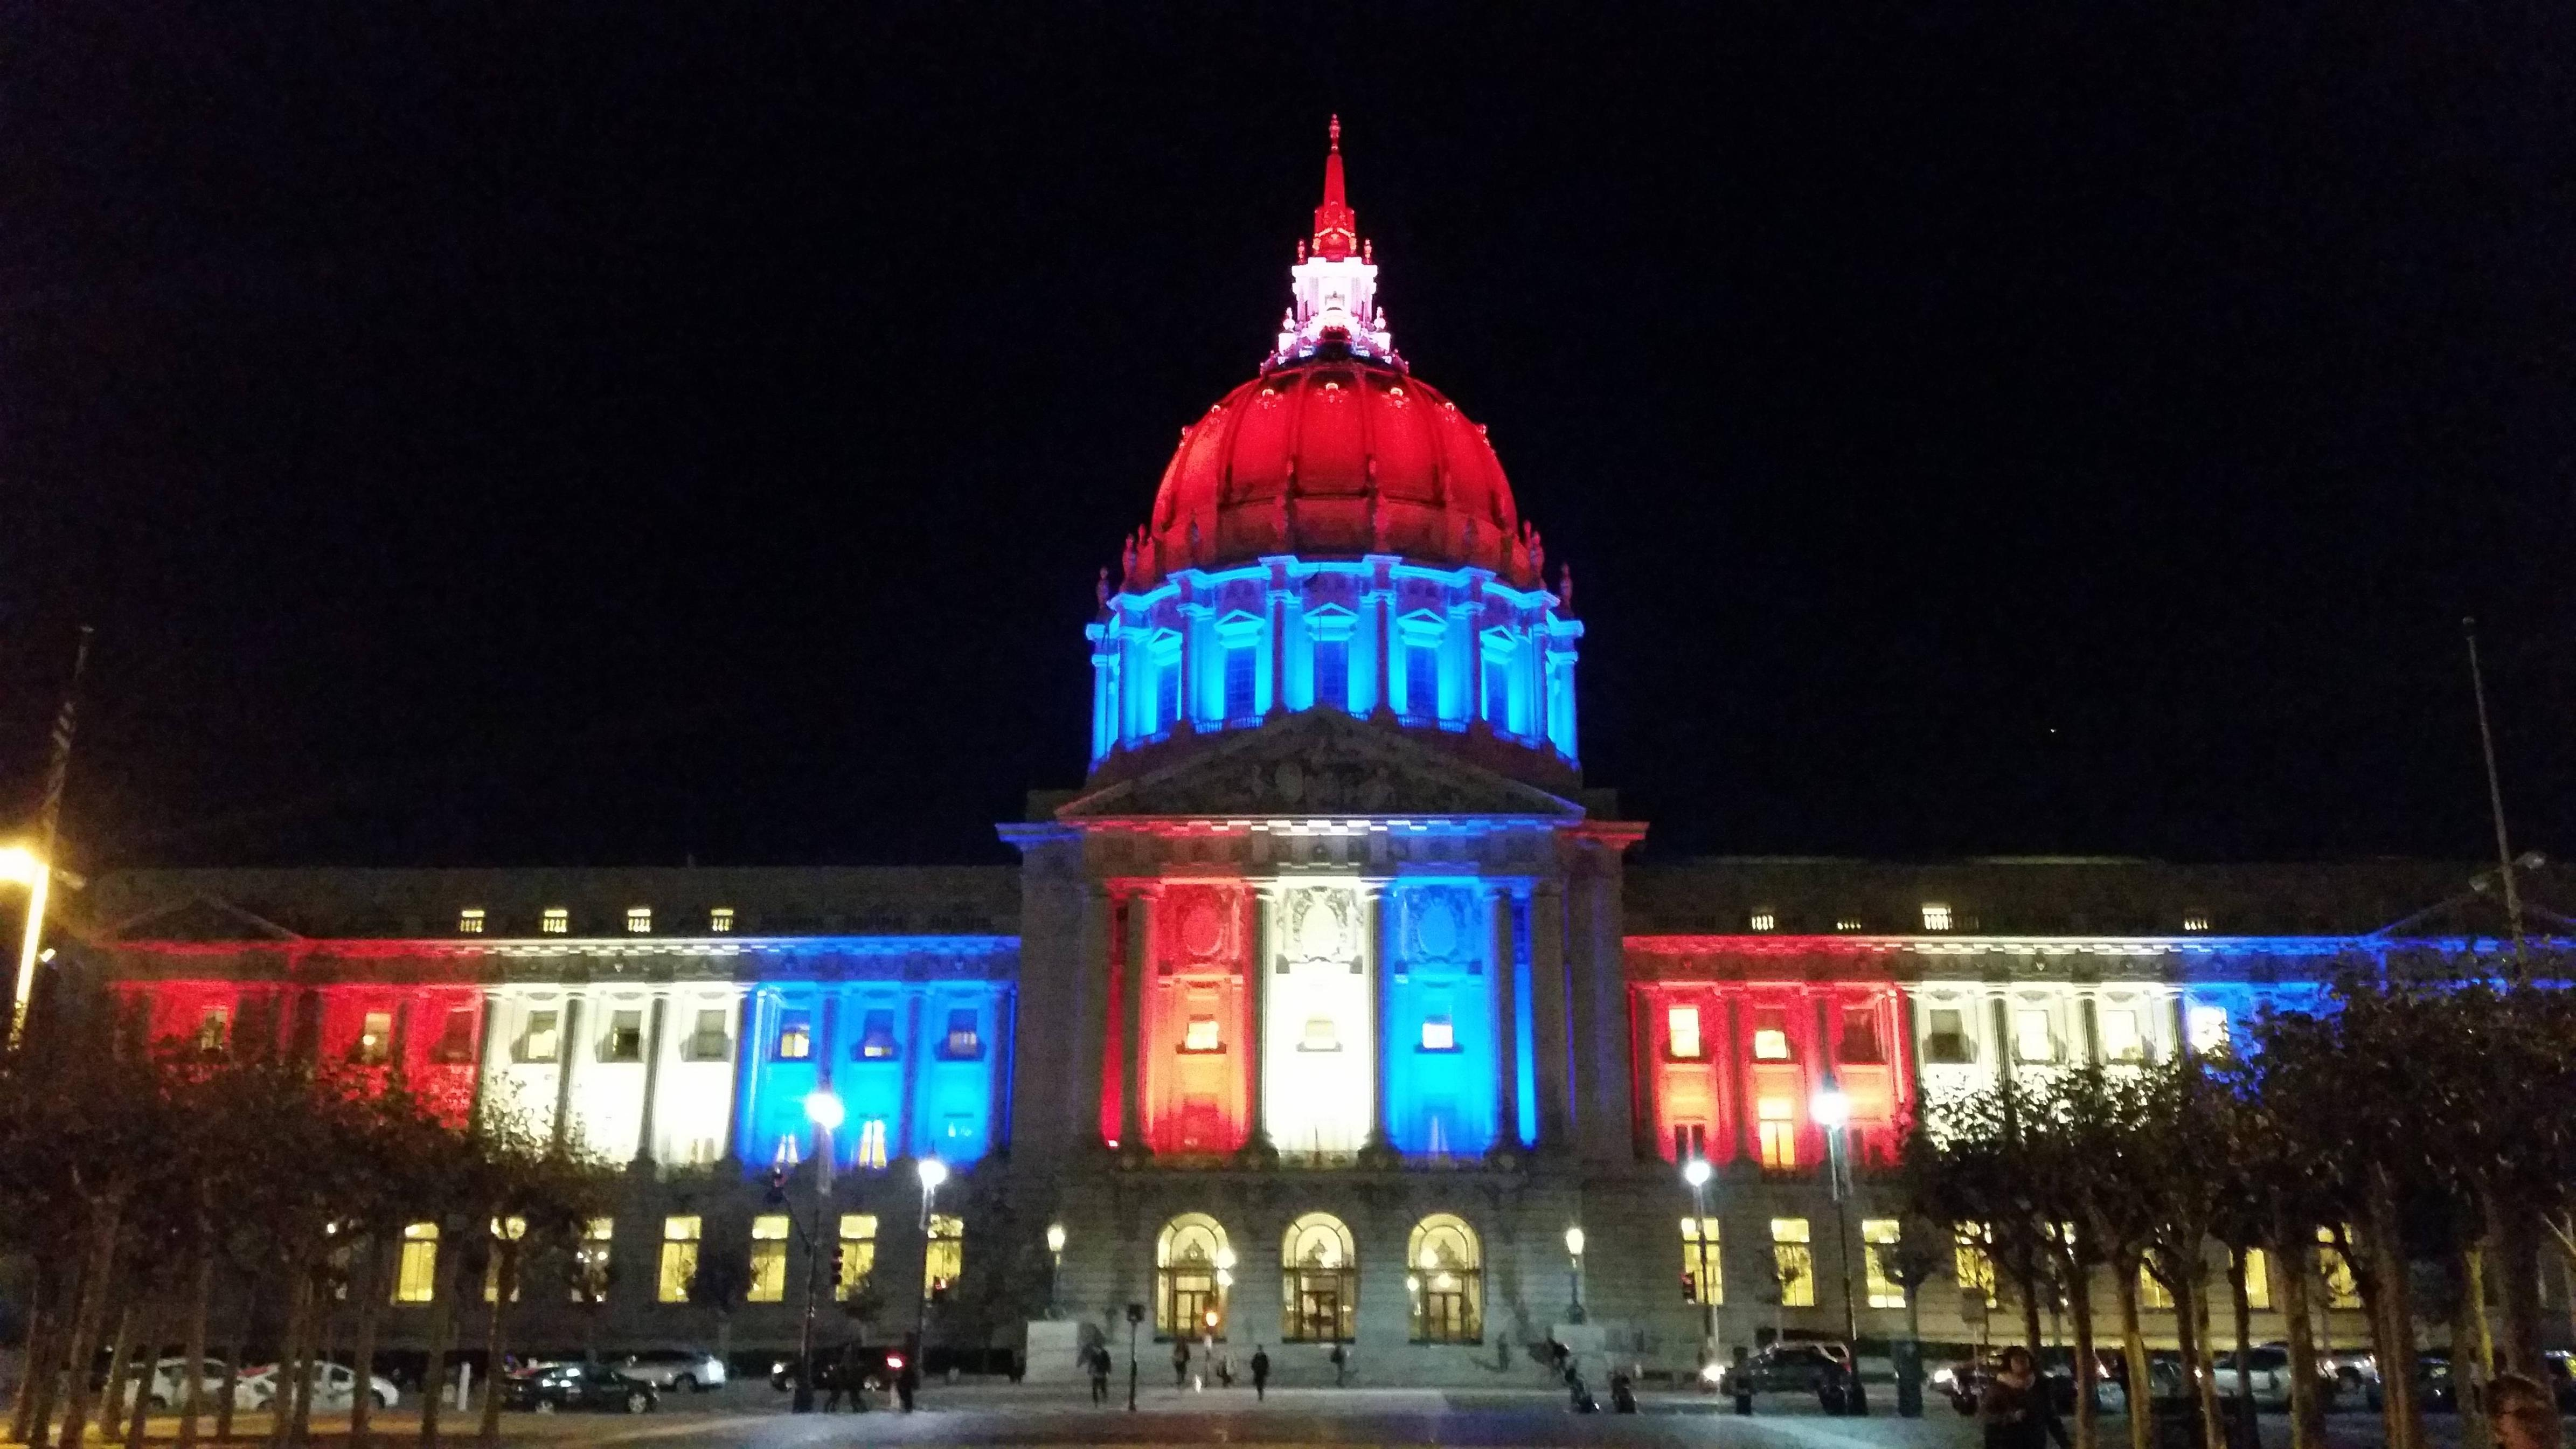 City Hall in San Franciso showing support to those in Paris, France